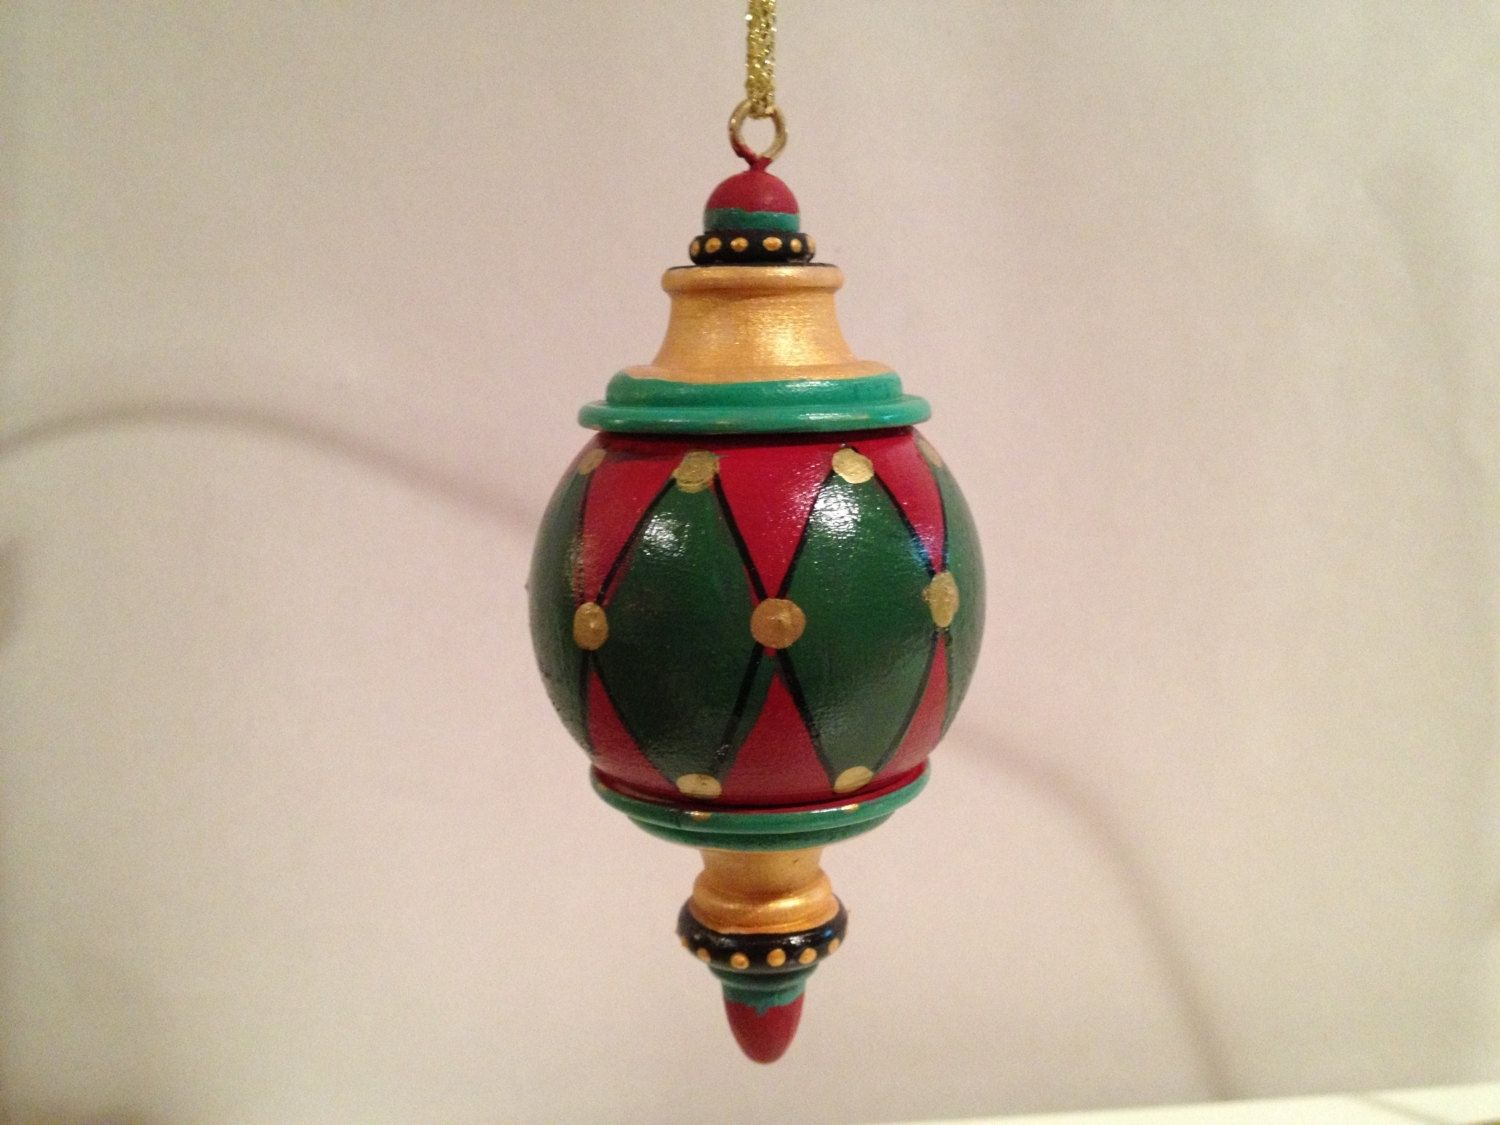 Hand Made Hand Painted Solid Wood Christmas Finial Ornaments This Price Is  For One (1) Ornament By Michele Sprague Design  Custommade